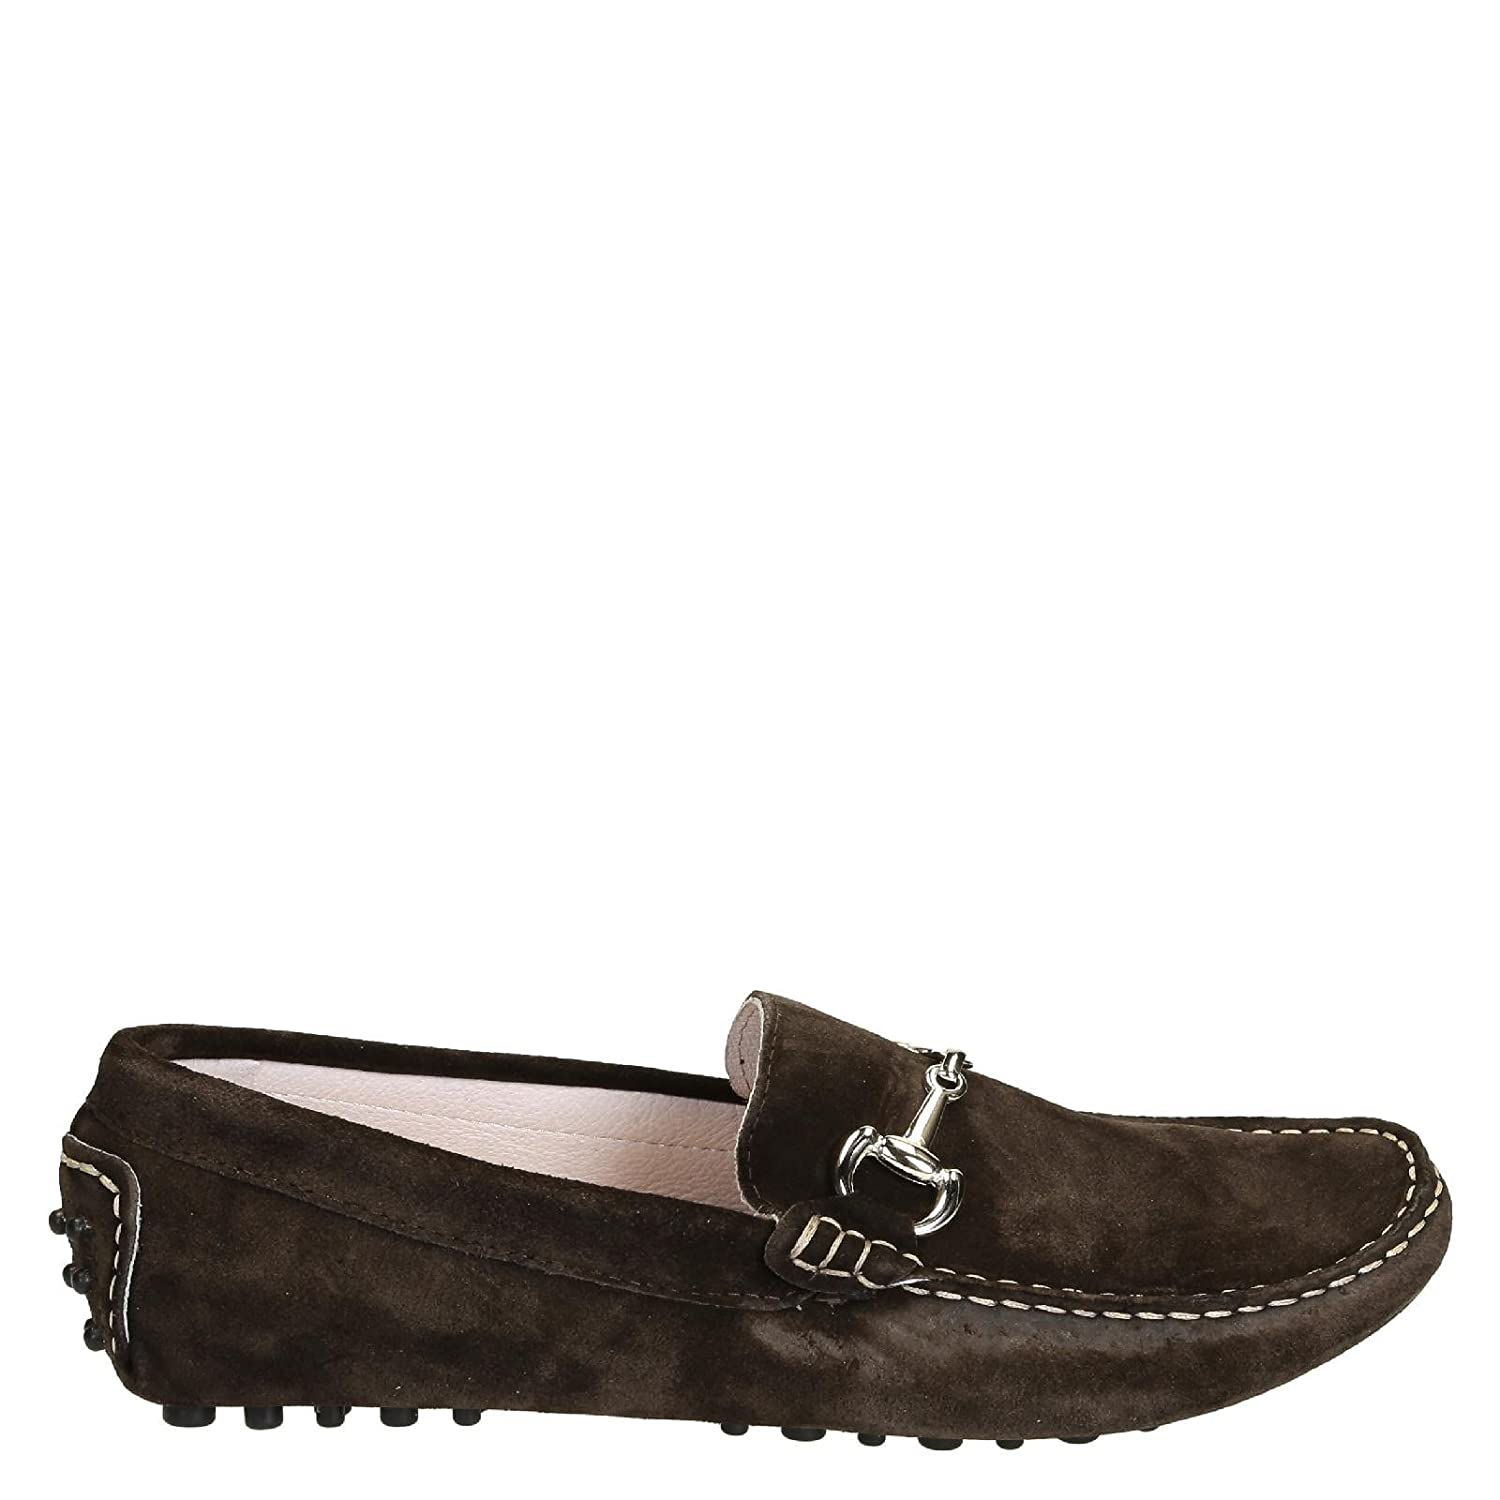 Men's LU4CAMOSCIOTESTADIMORO Brown Suede Loafers